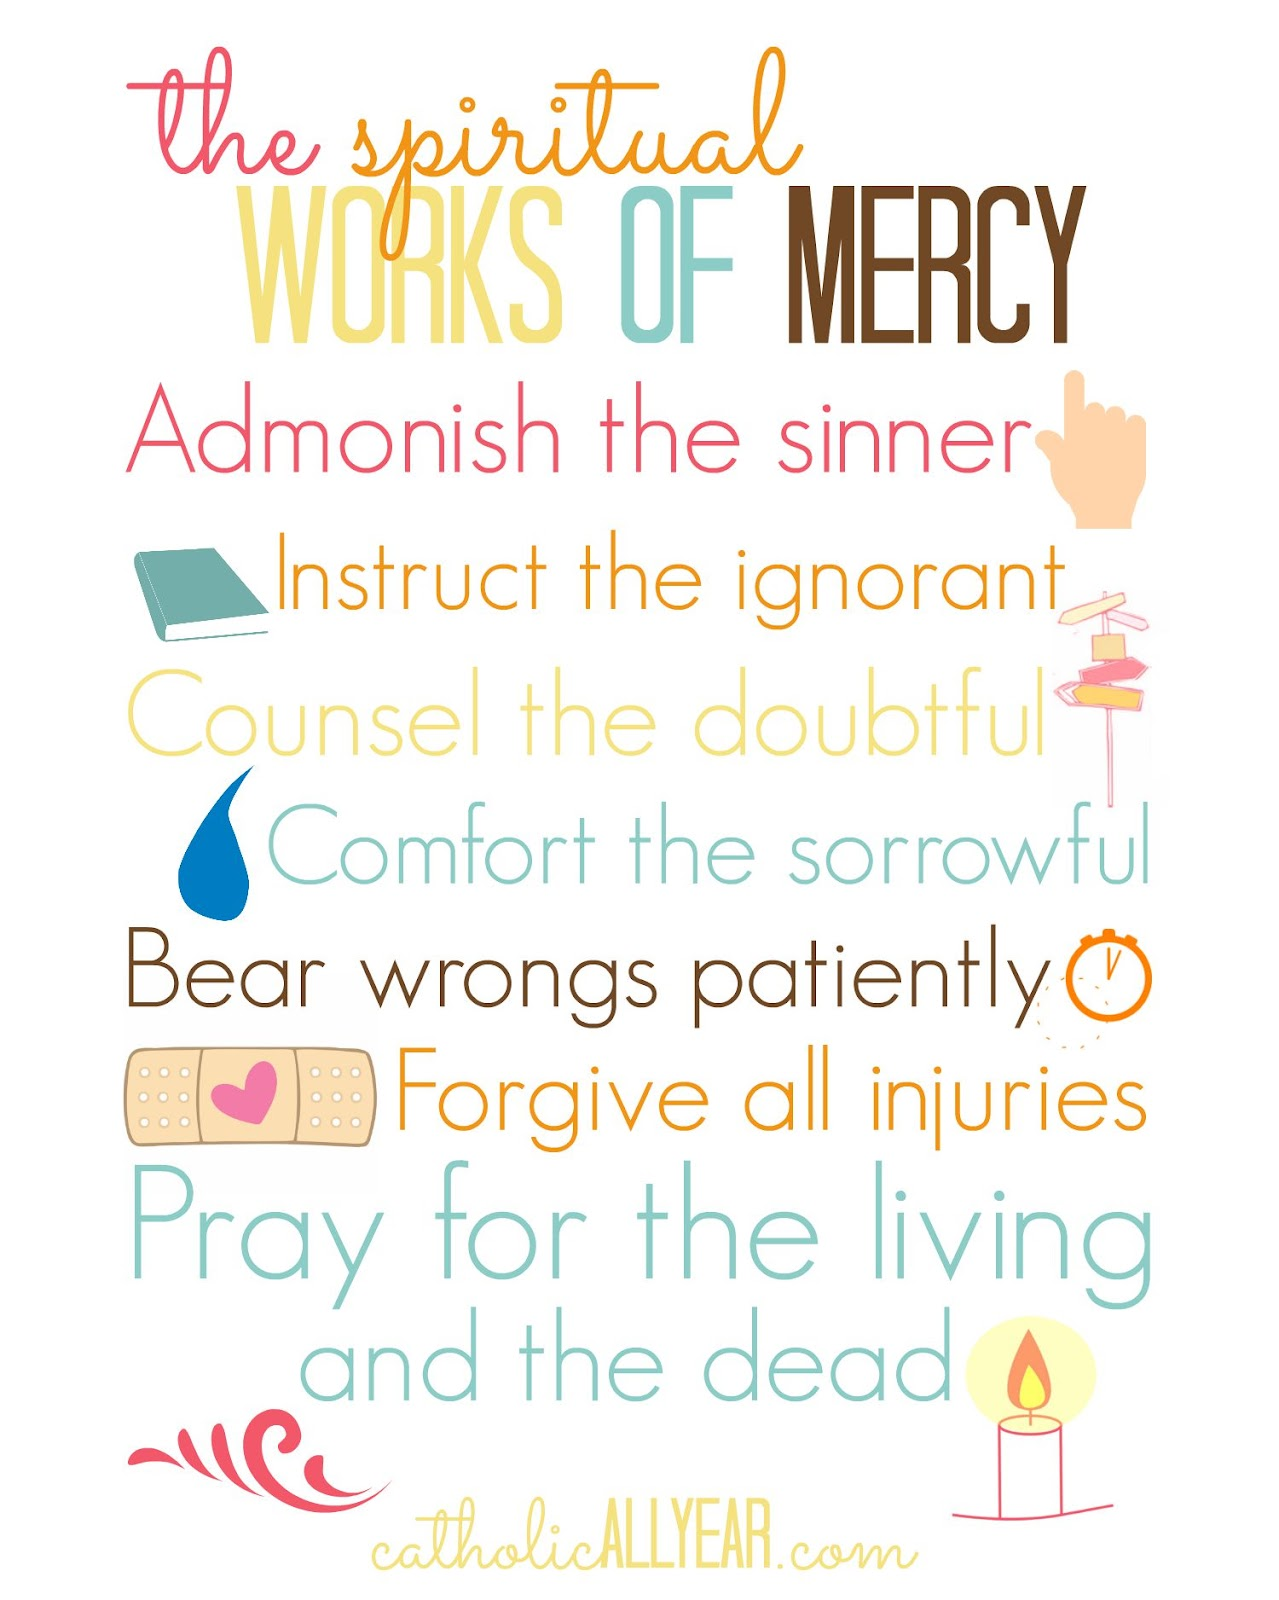 The Year of Mercy Family Challenge Catholic All Year